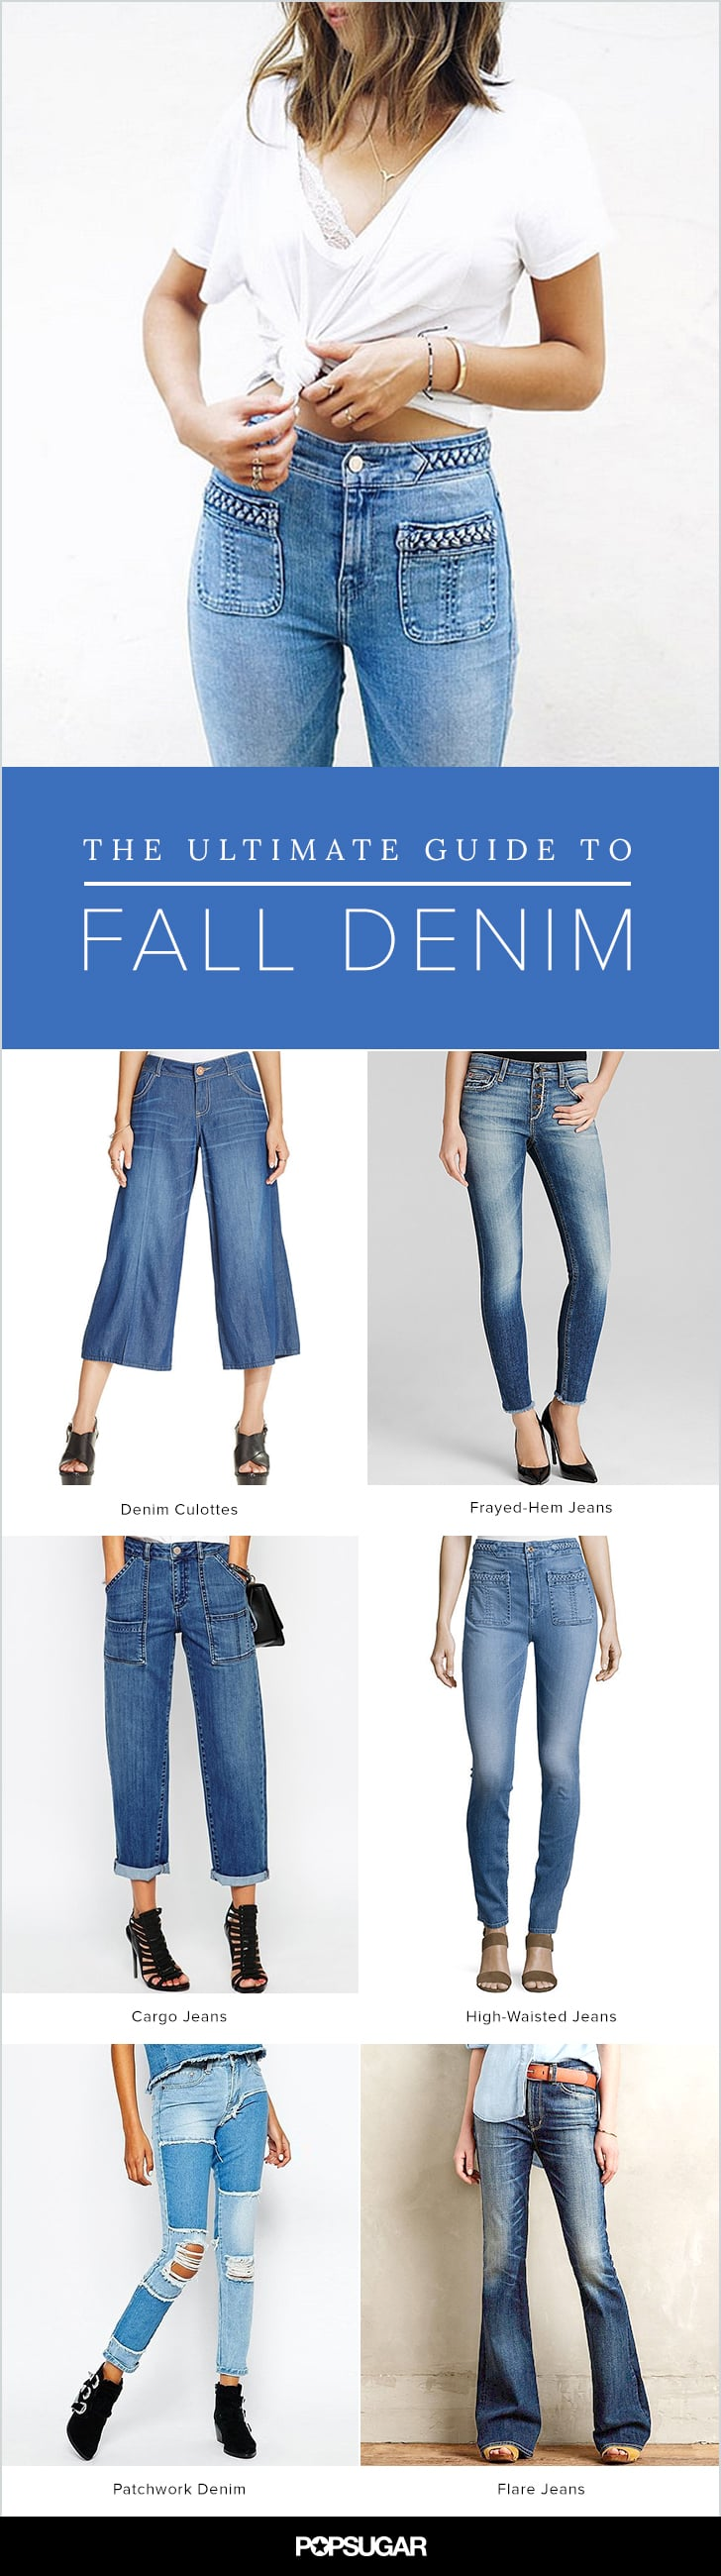 The 7 Biggest Denim Trends For Fall